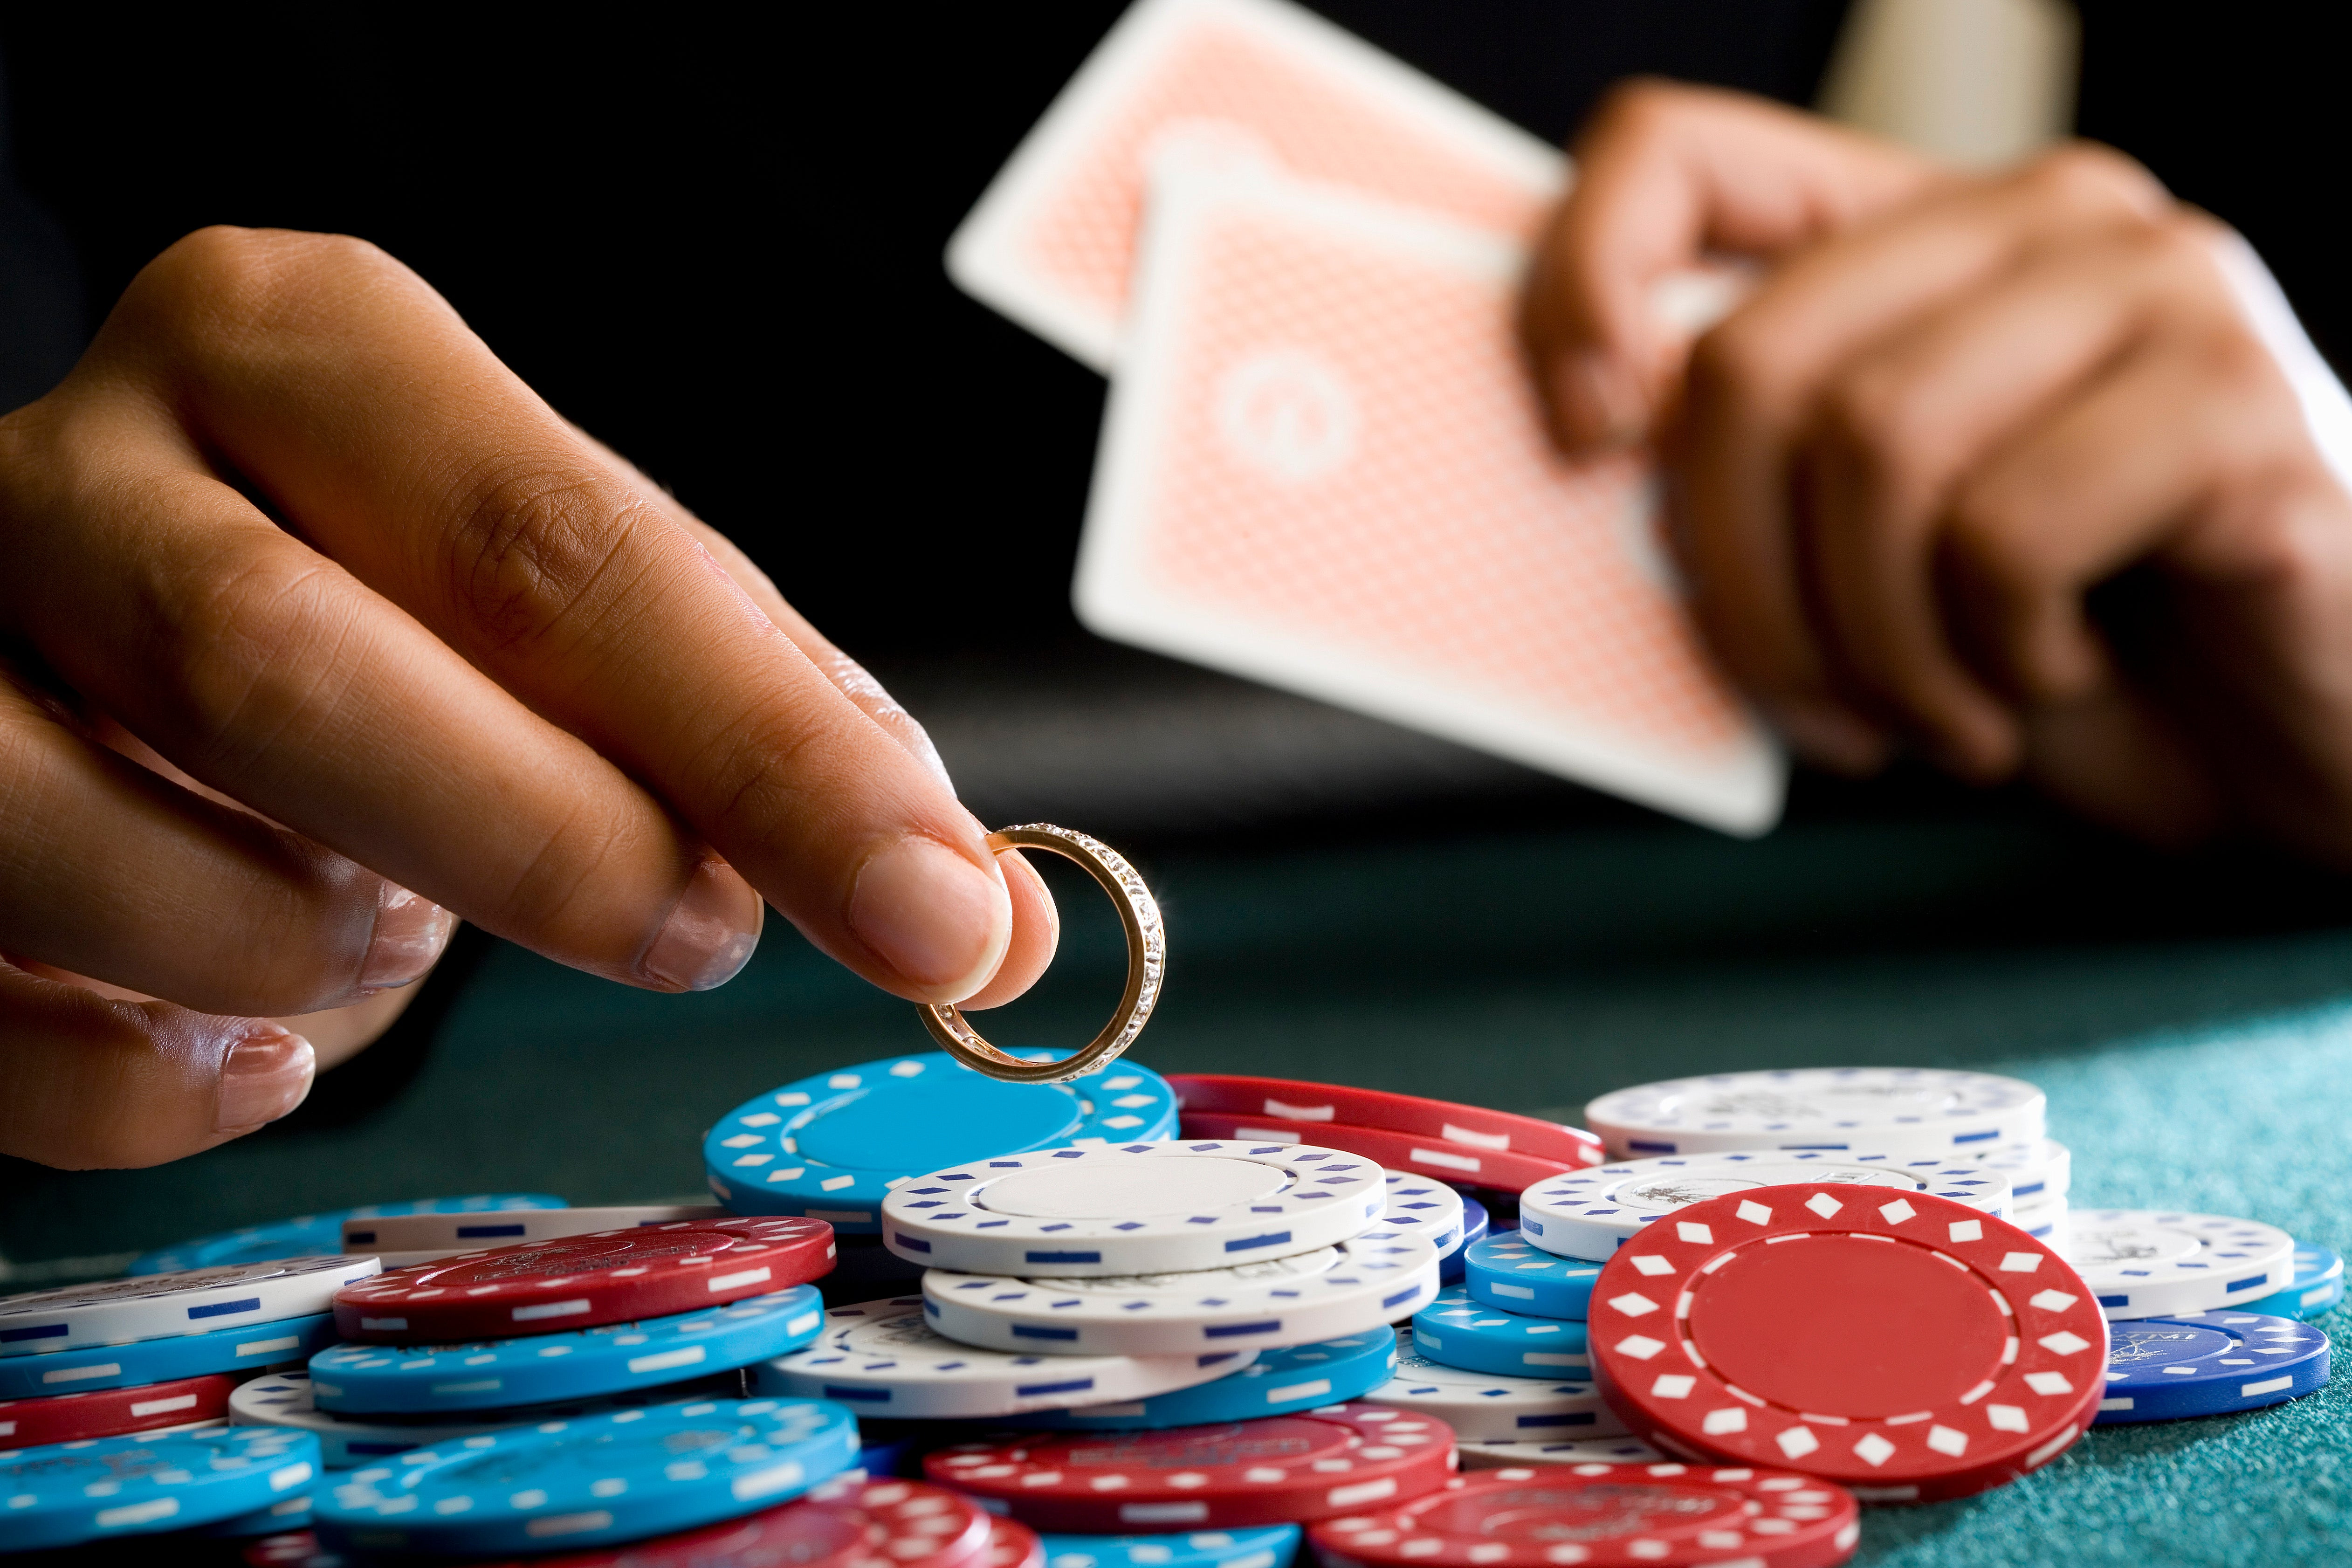 Gambling additions best gambling games to play